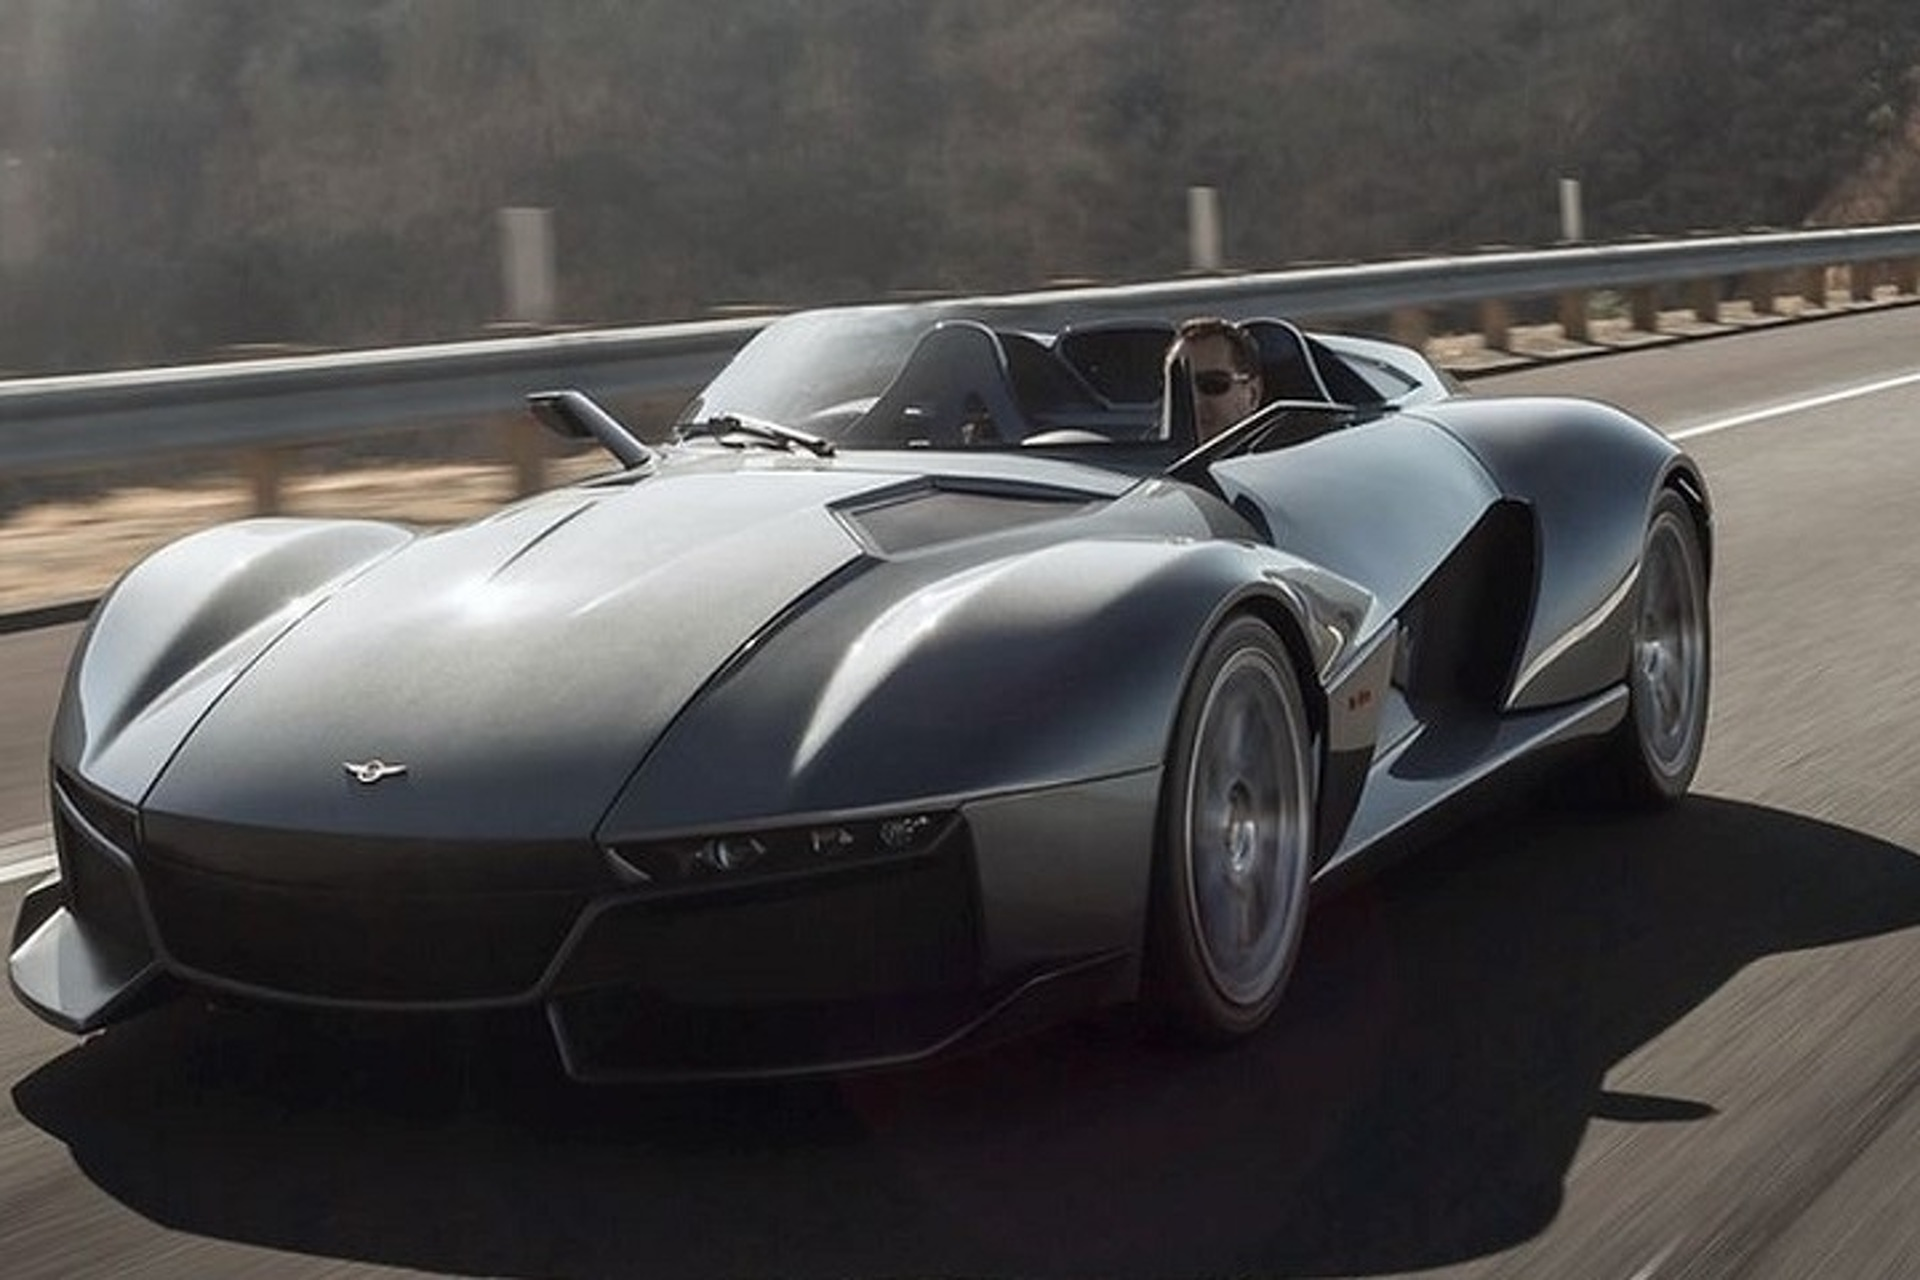 Chris Brown Just Bought an Ultra-Rare Rezvani Beast